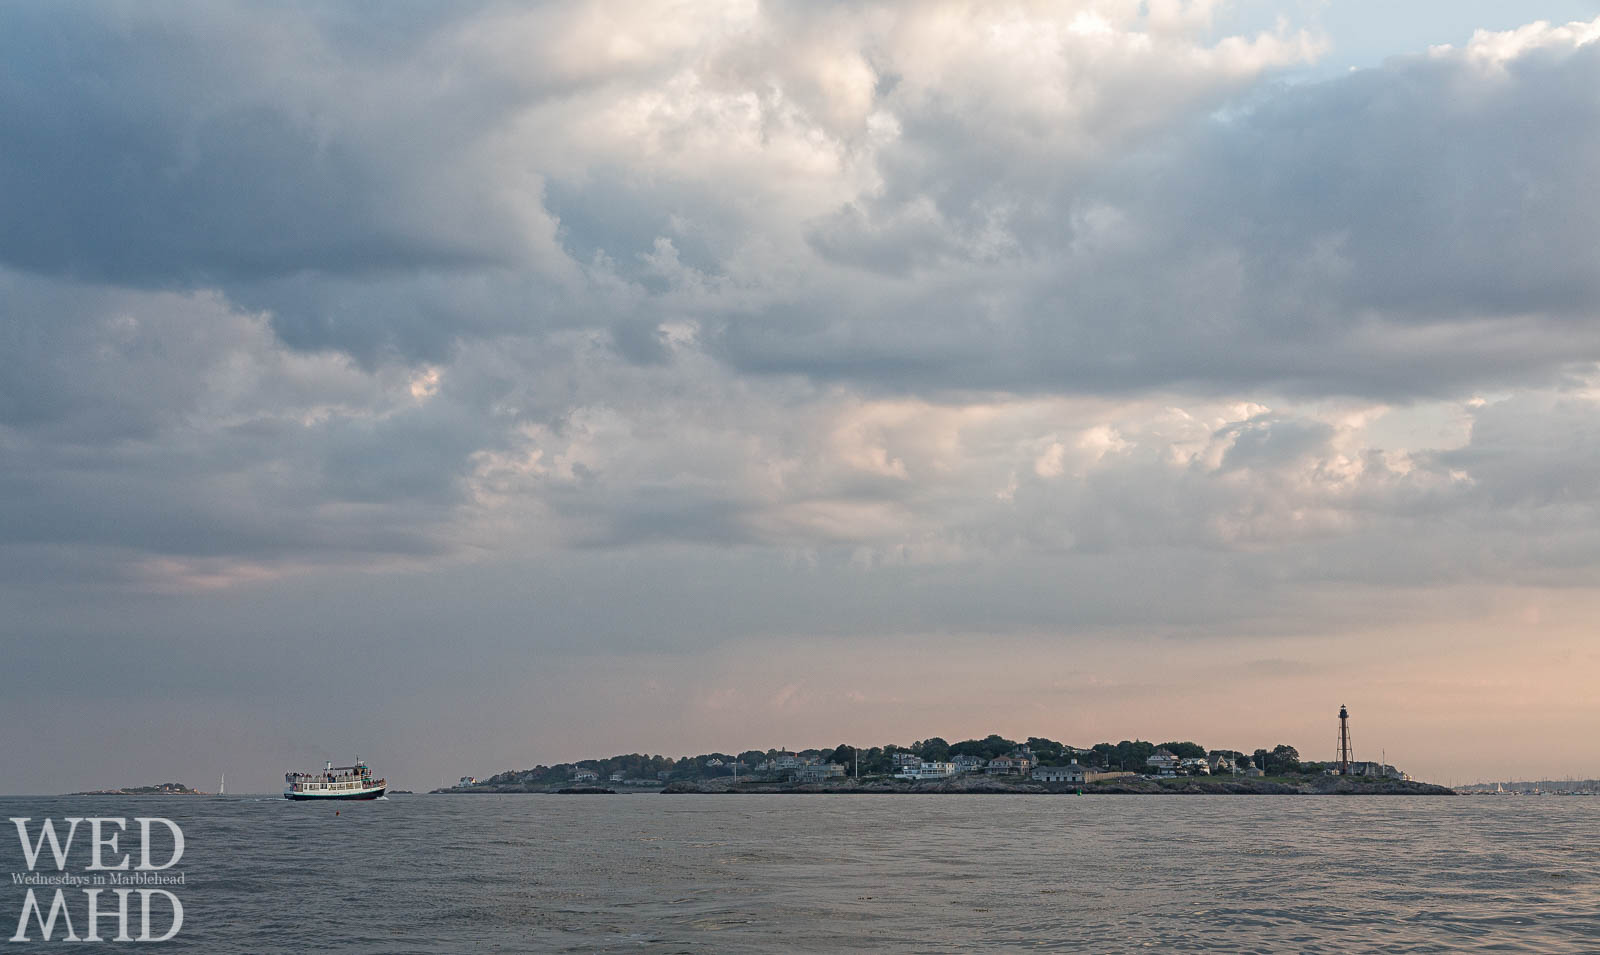 The Hannah Glover brings campers back to Marblehead after a day spent on Children's Island